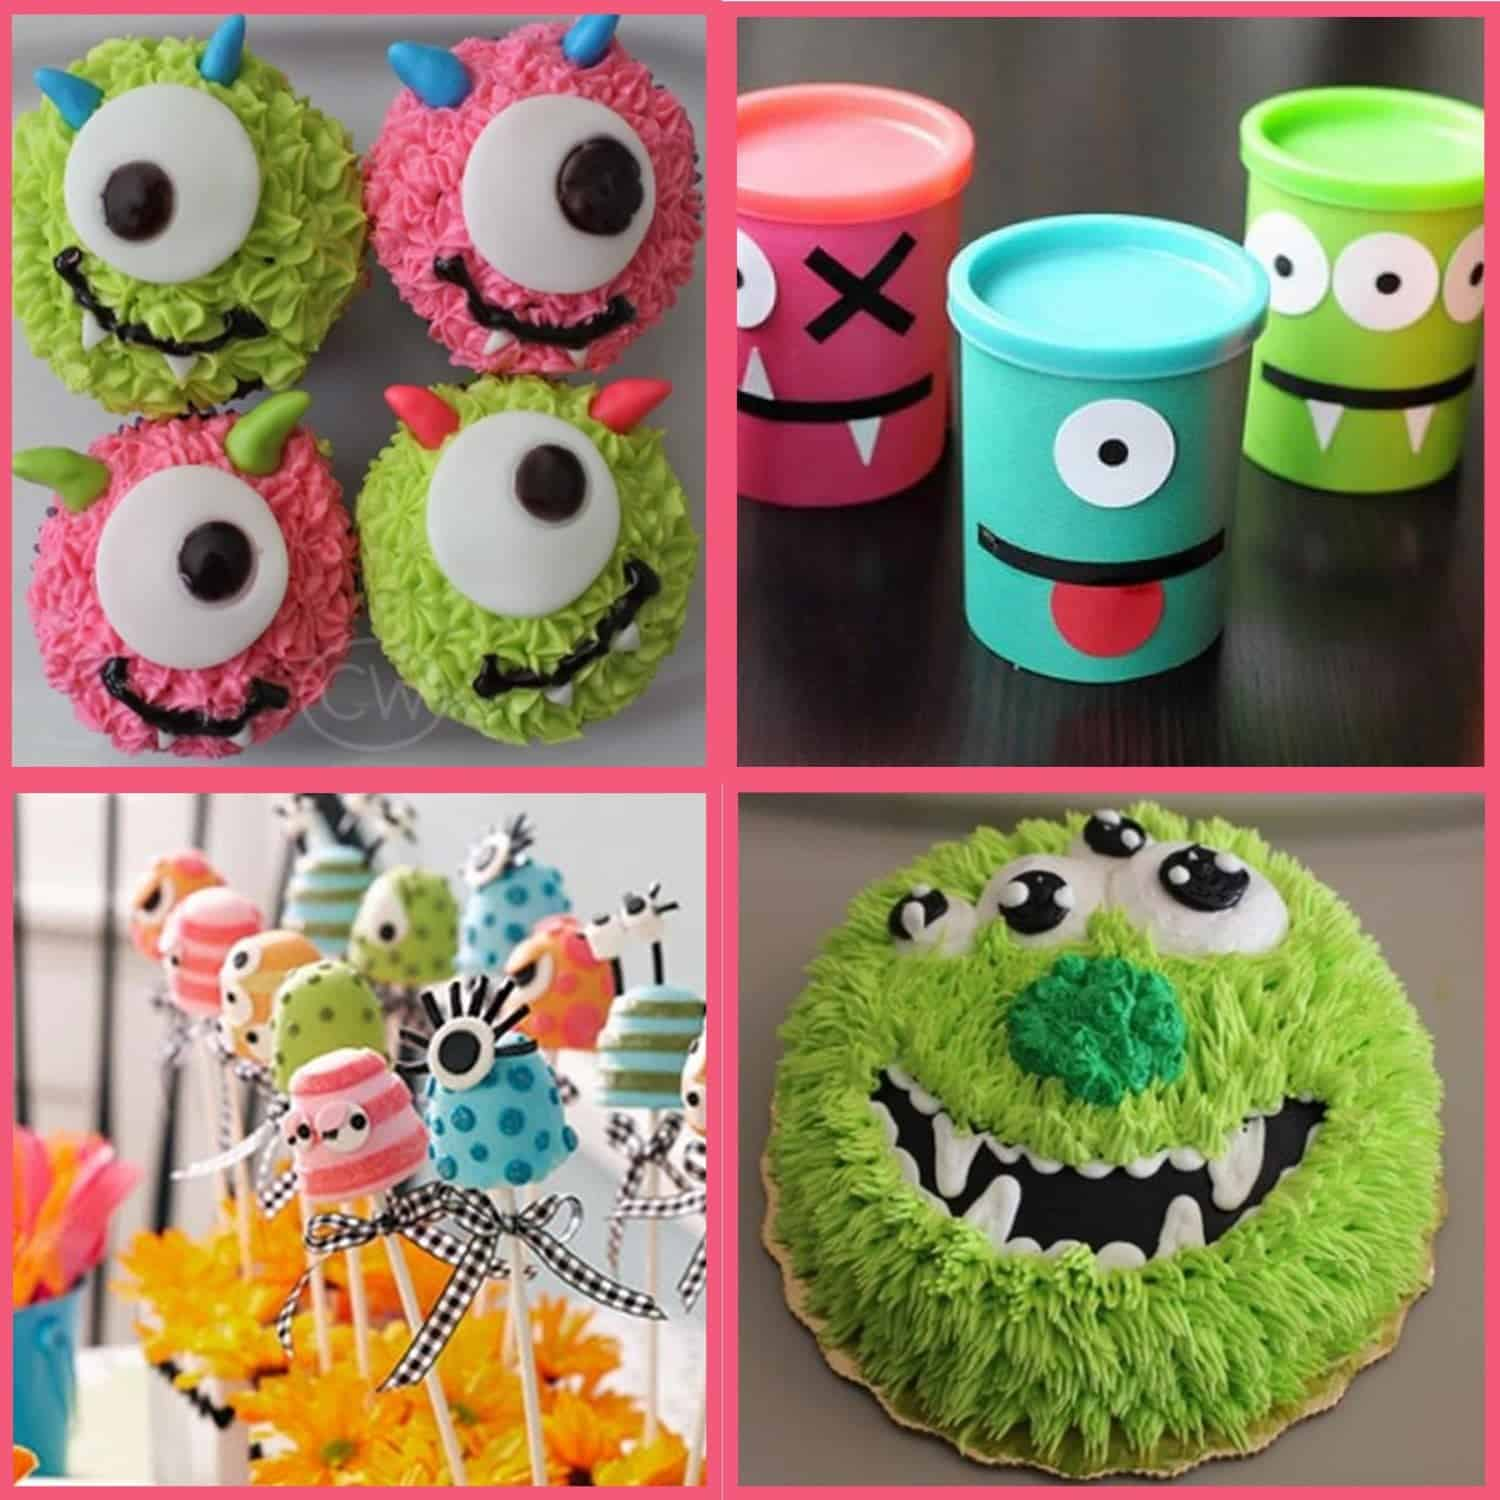 Monster Party: Monster Party Ideas and Crafts